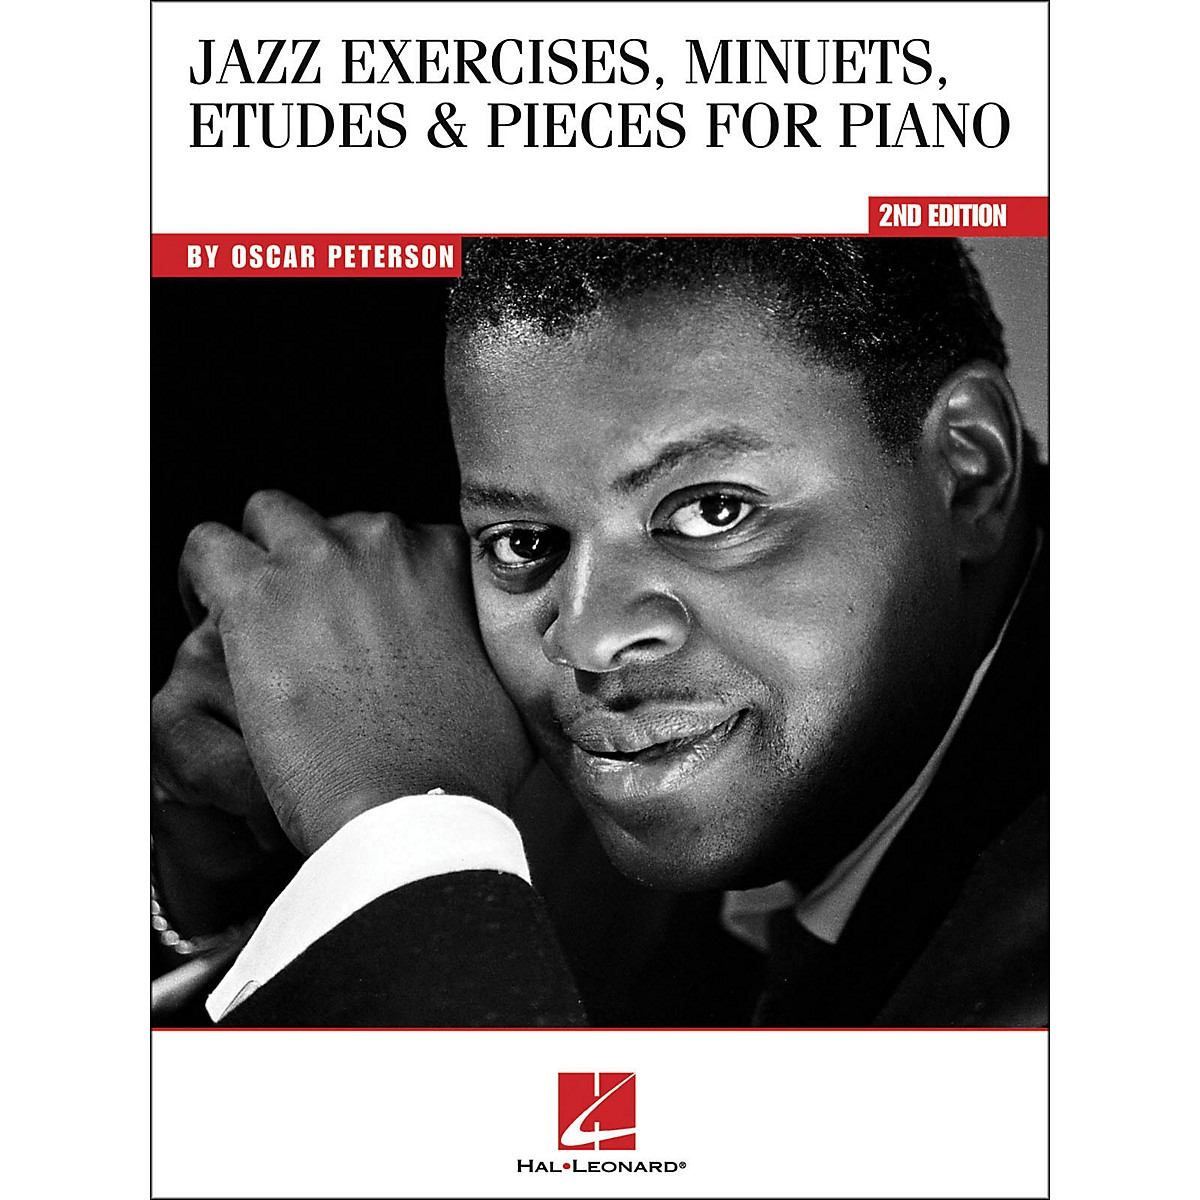 Hal Leonard Jazz Exercises, Minuets, Etudes and Pieces for Piano 2Nd Edition